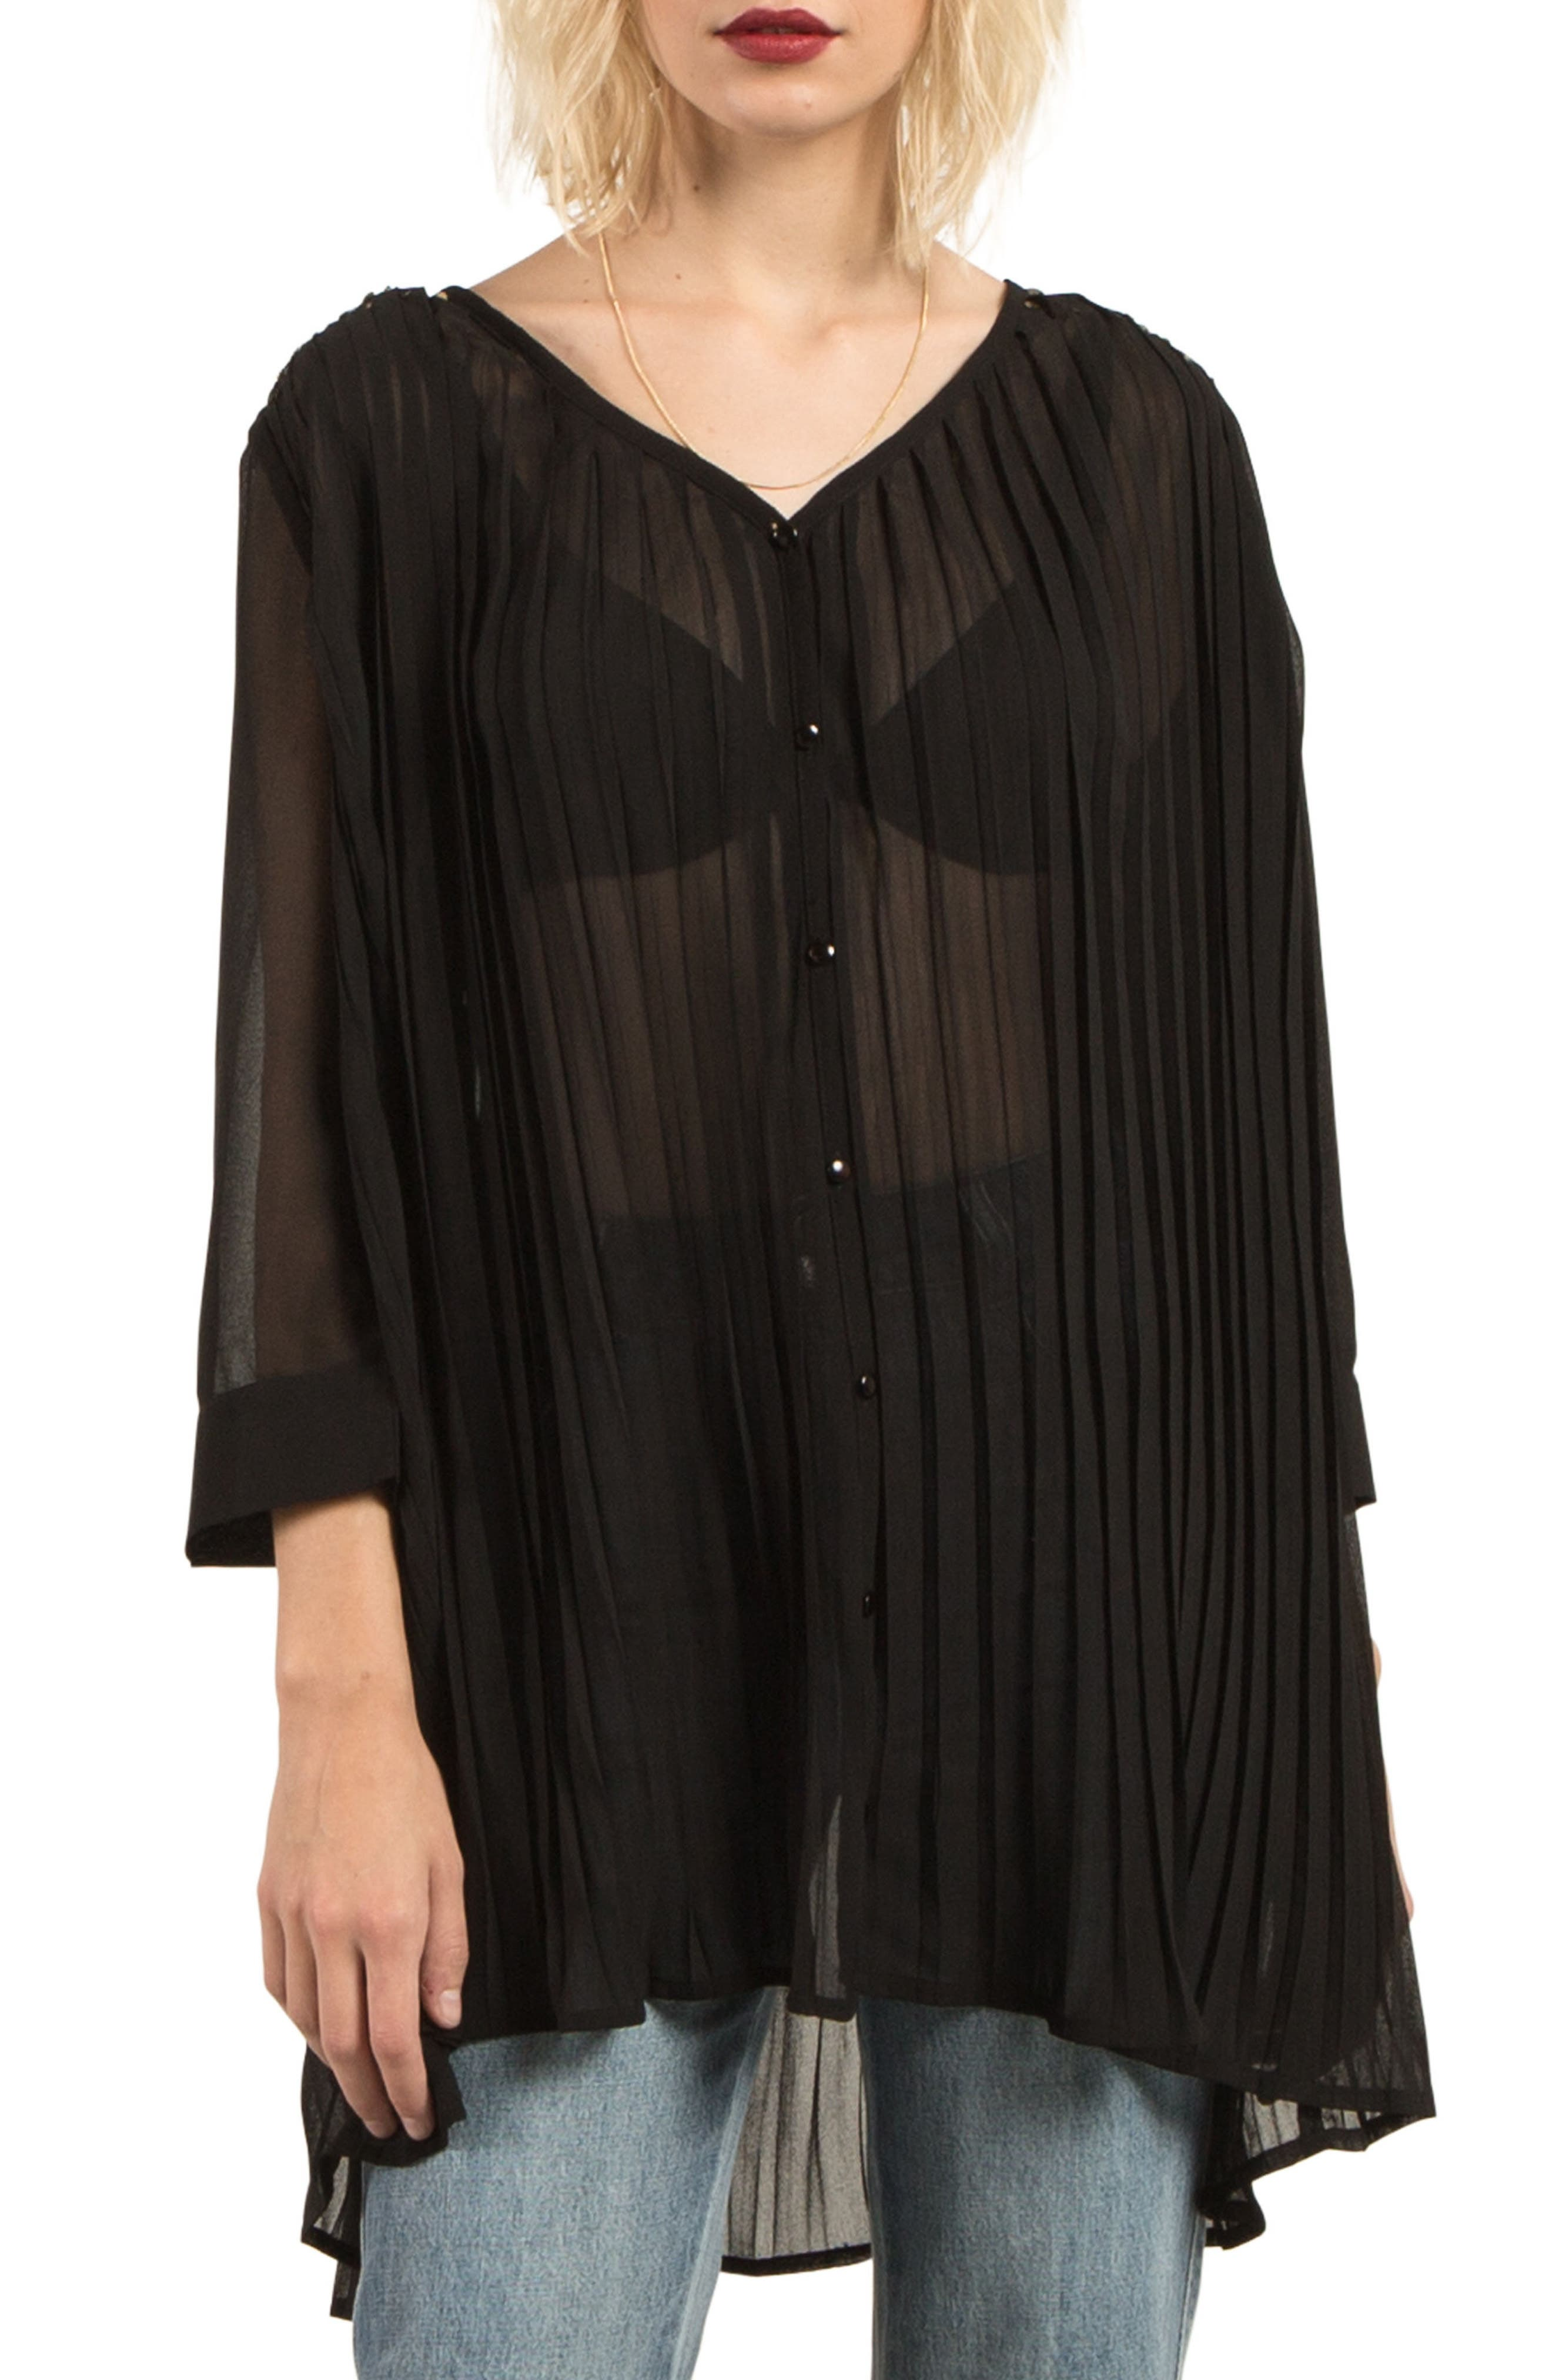 Alternate Image 1 Selected - Volcom Pleat Down Tunic Top